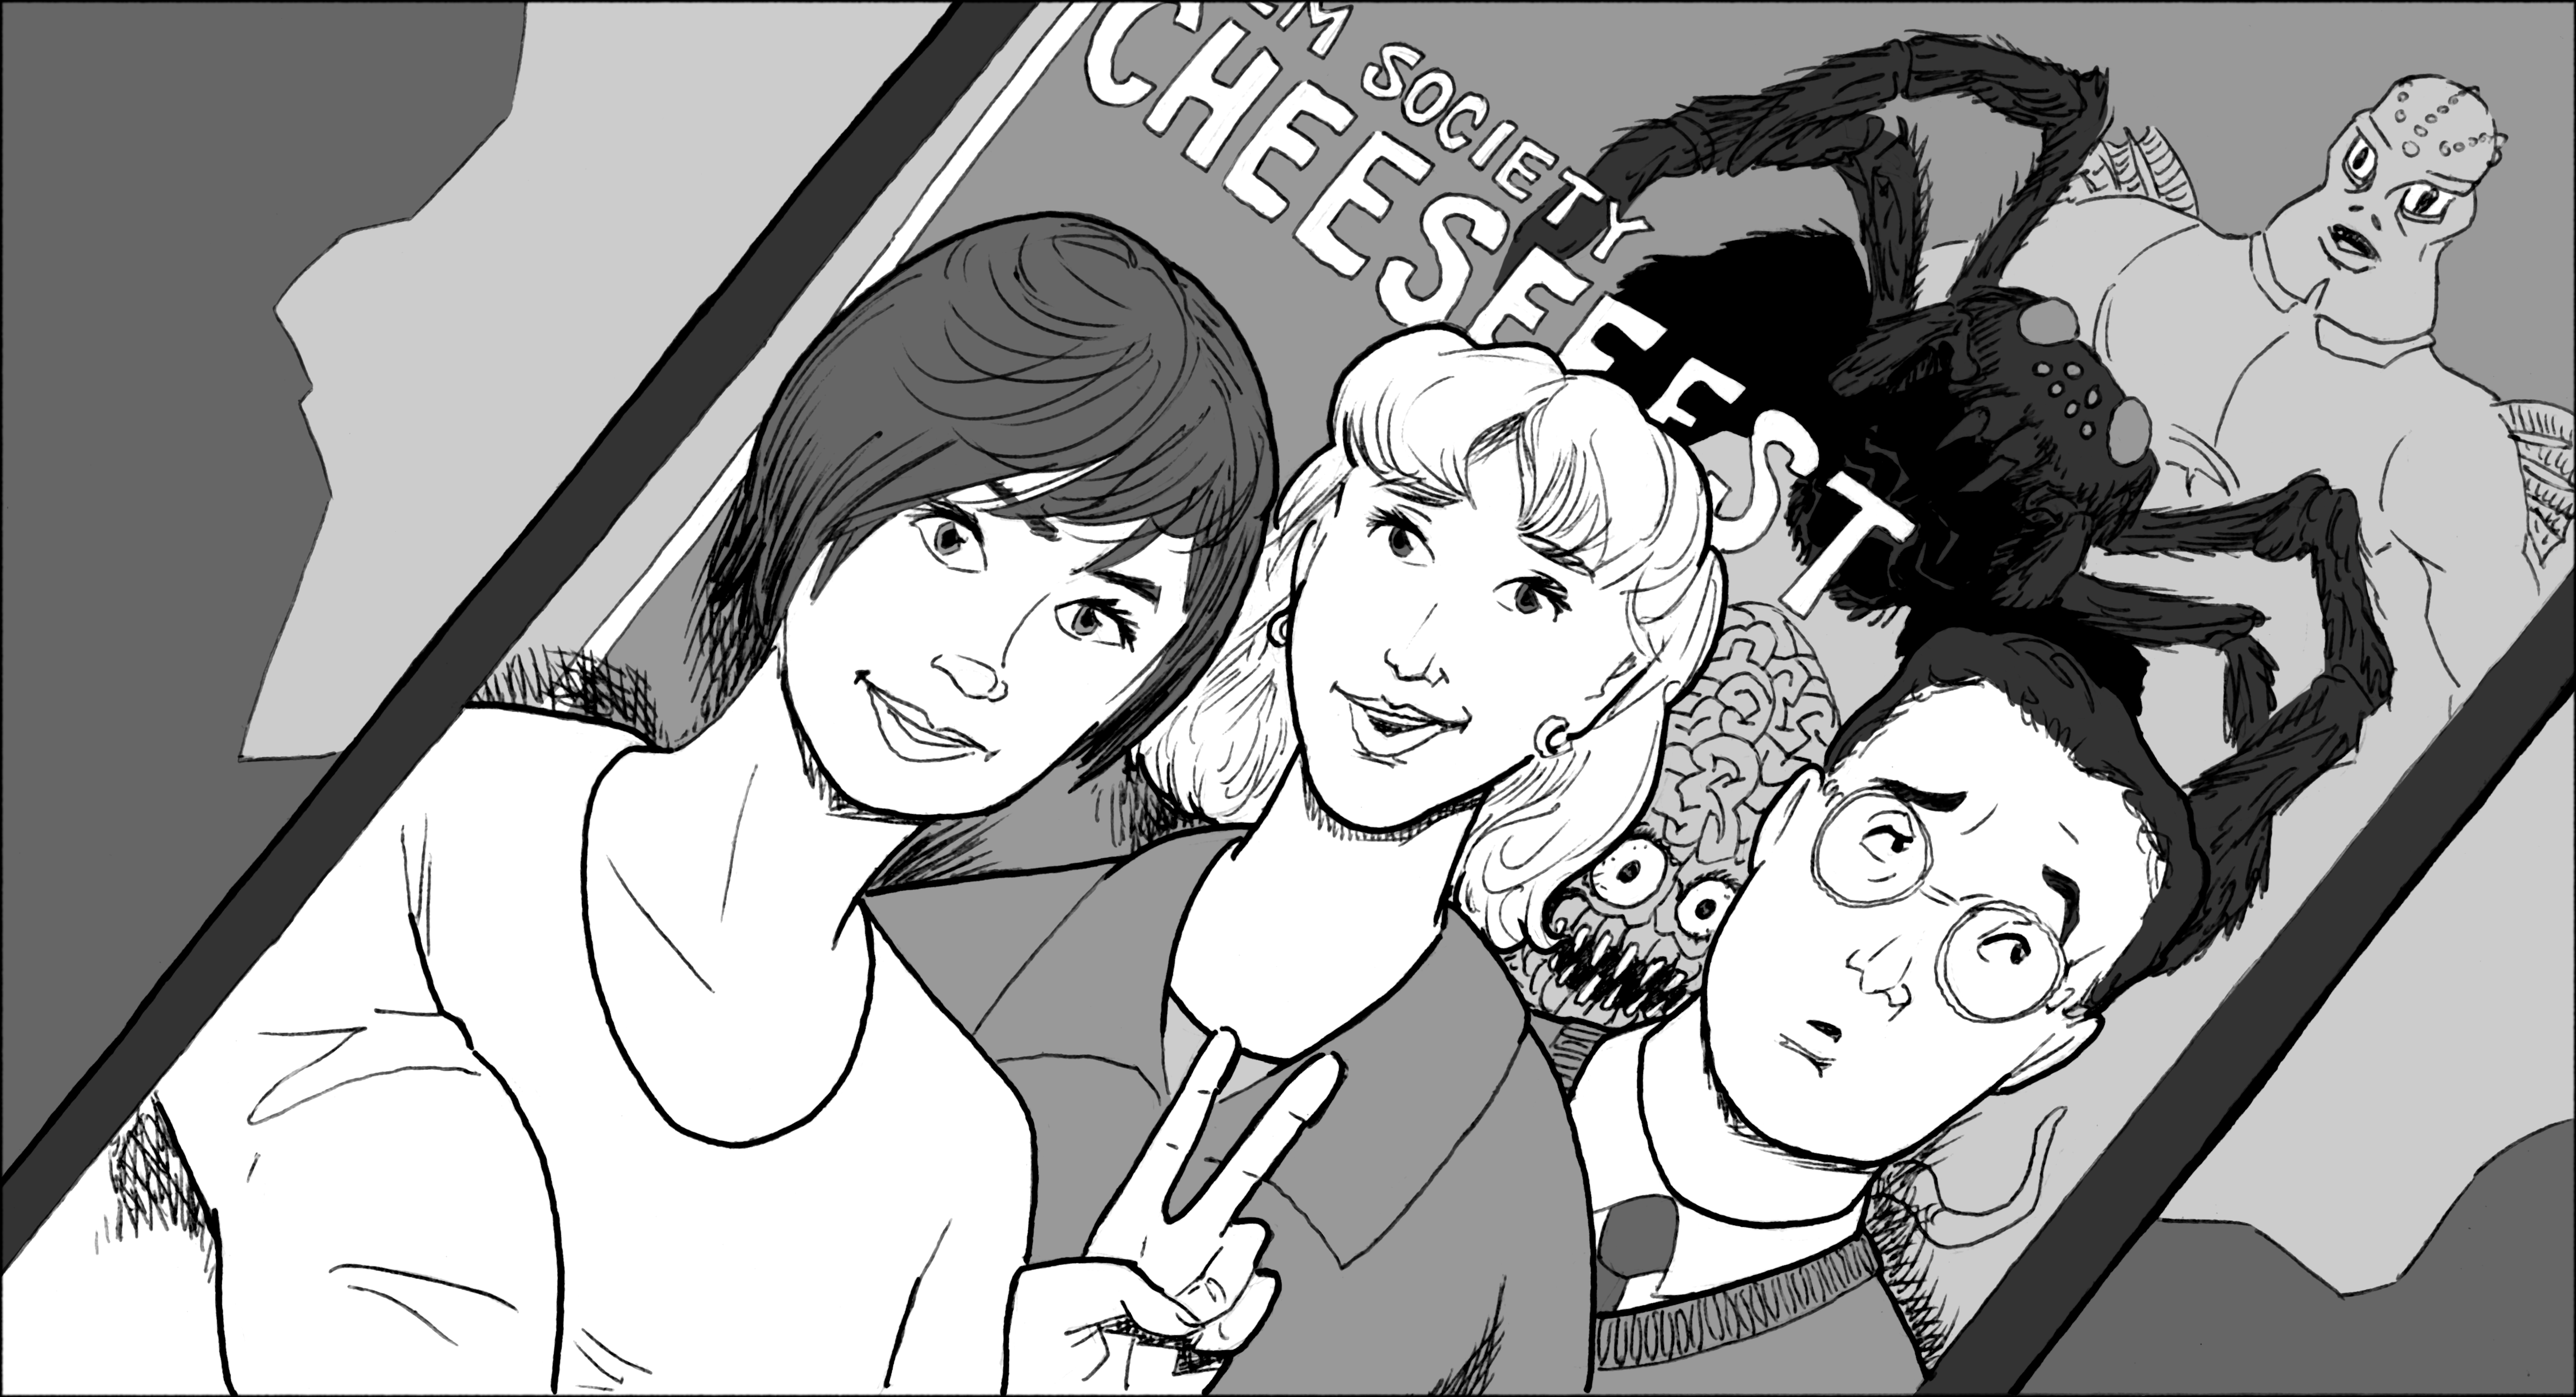 Toozie, Miranda, and Sherman take a selfie at Cheesefest.